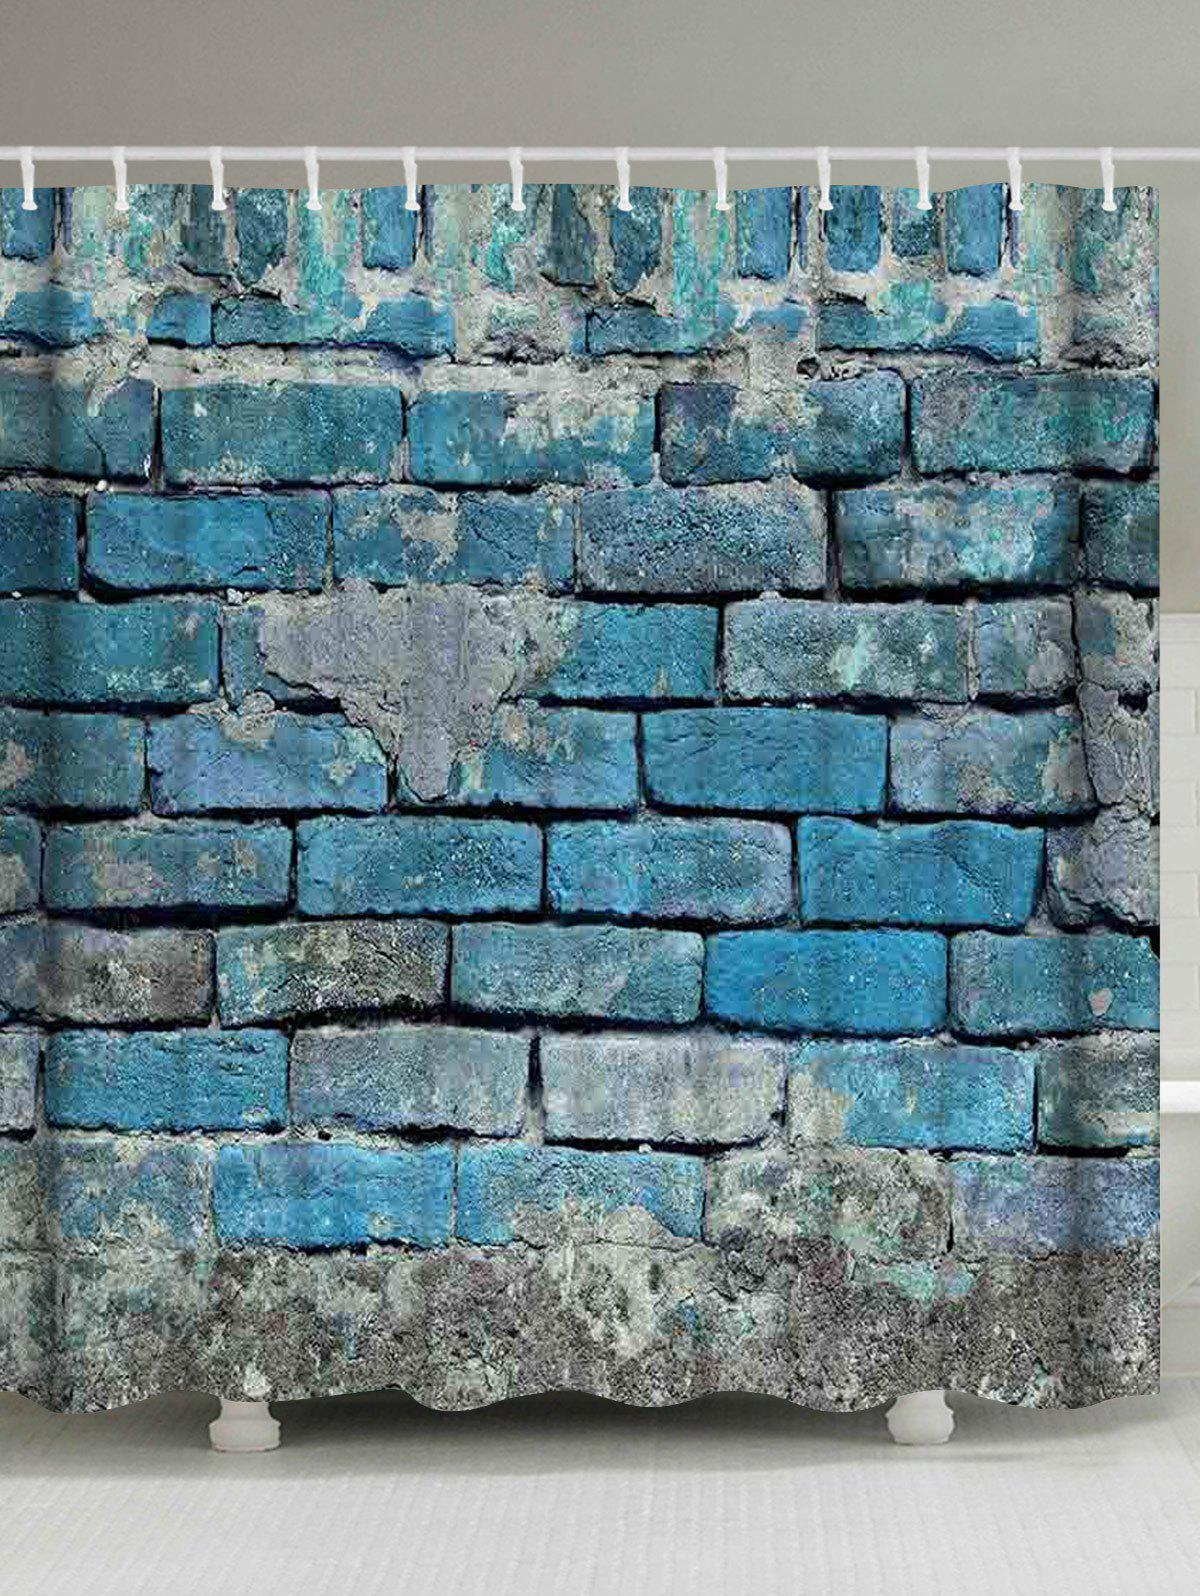 Vintage Brick Wall Shower Curtain Bathroom Decor - LIGHT BLUE W71 INCH * L79 INCH